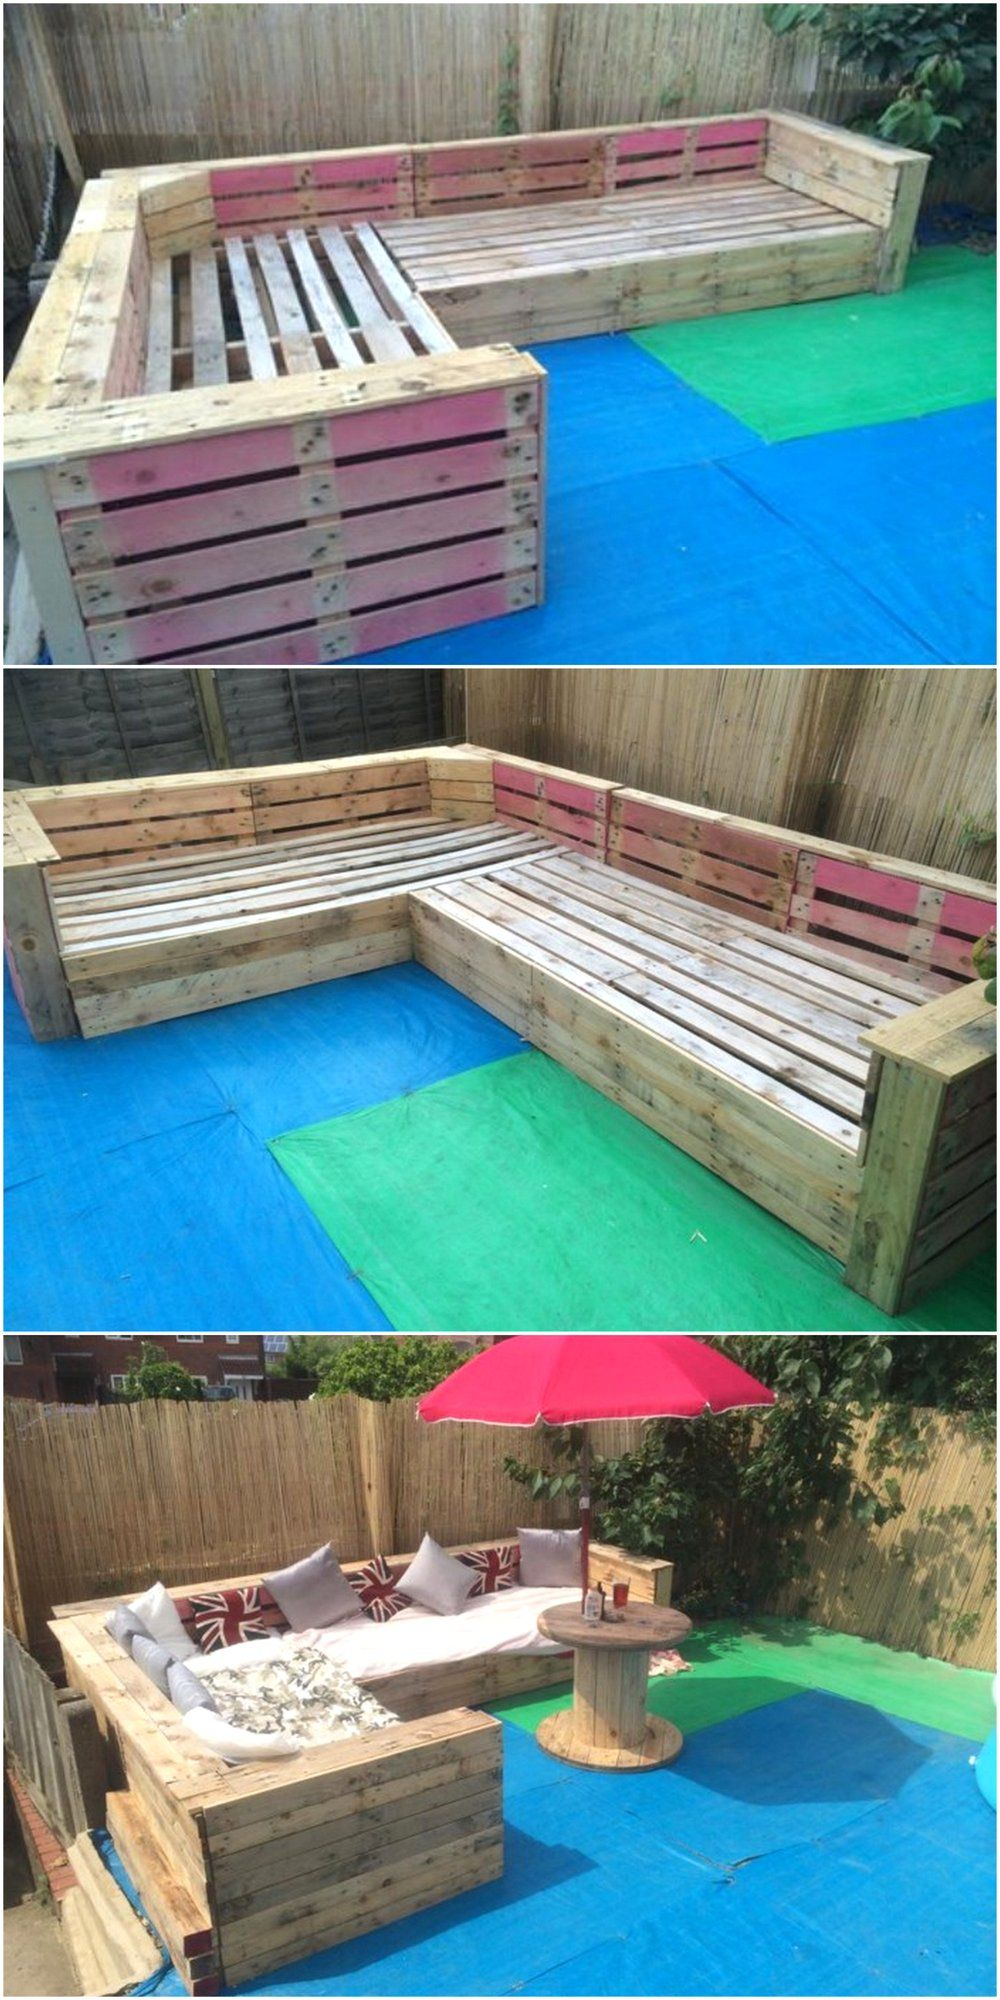 The Cushions On The Couches Are Also Beautified The Seating Area Just Have A Look Below This Pallets Pa Diy Garden Furniture Diy Patio Pallet Garden Furniture